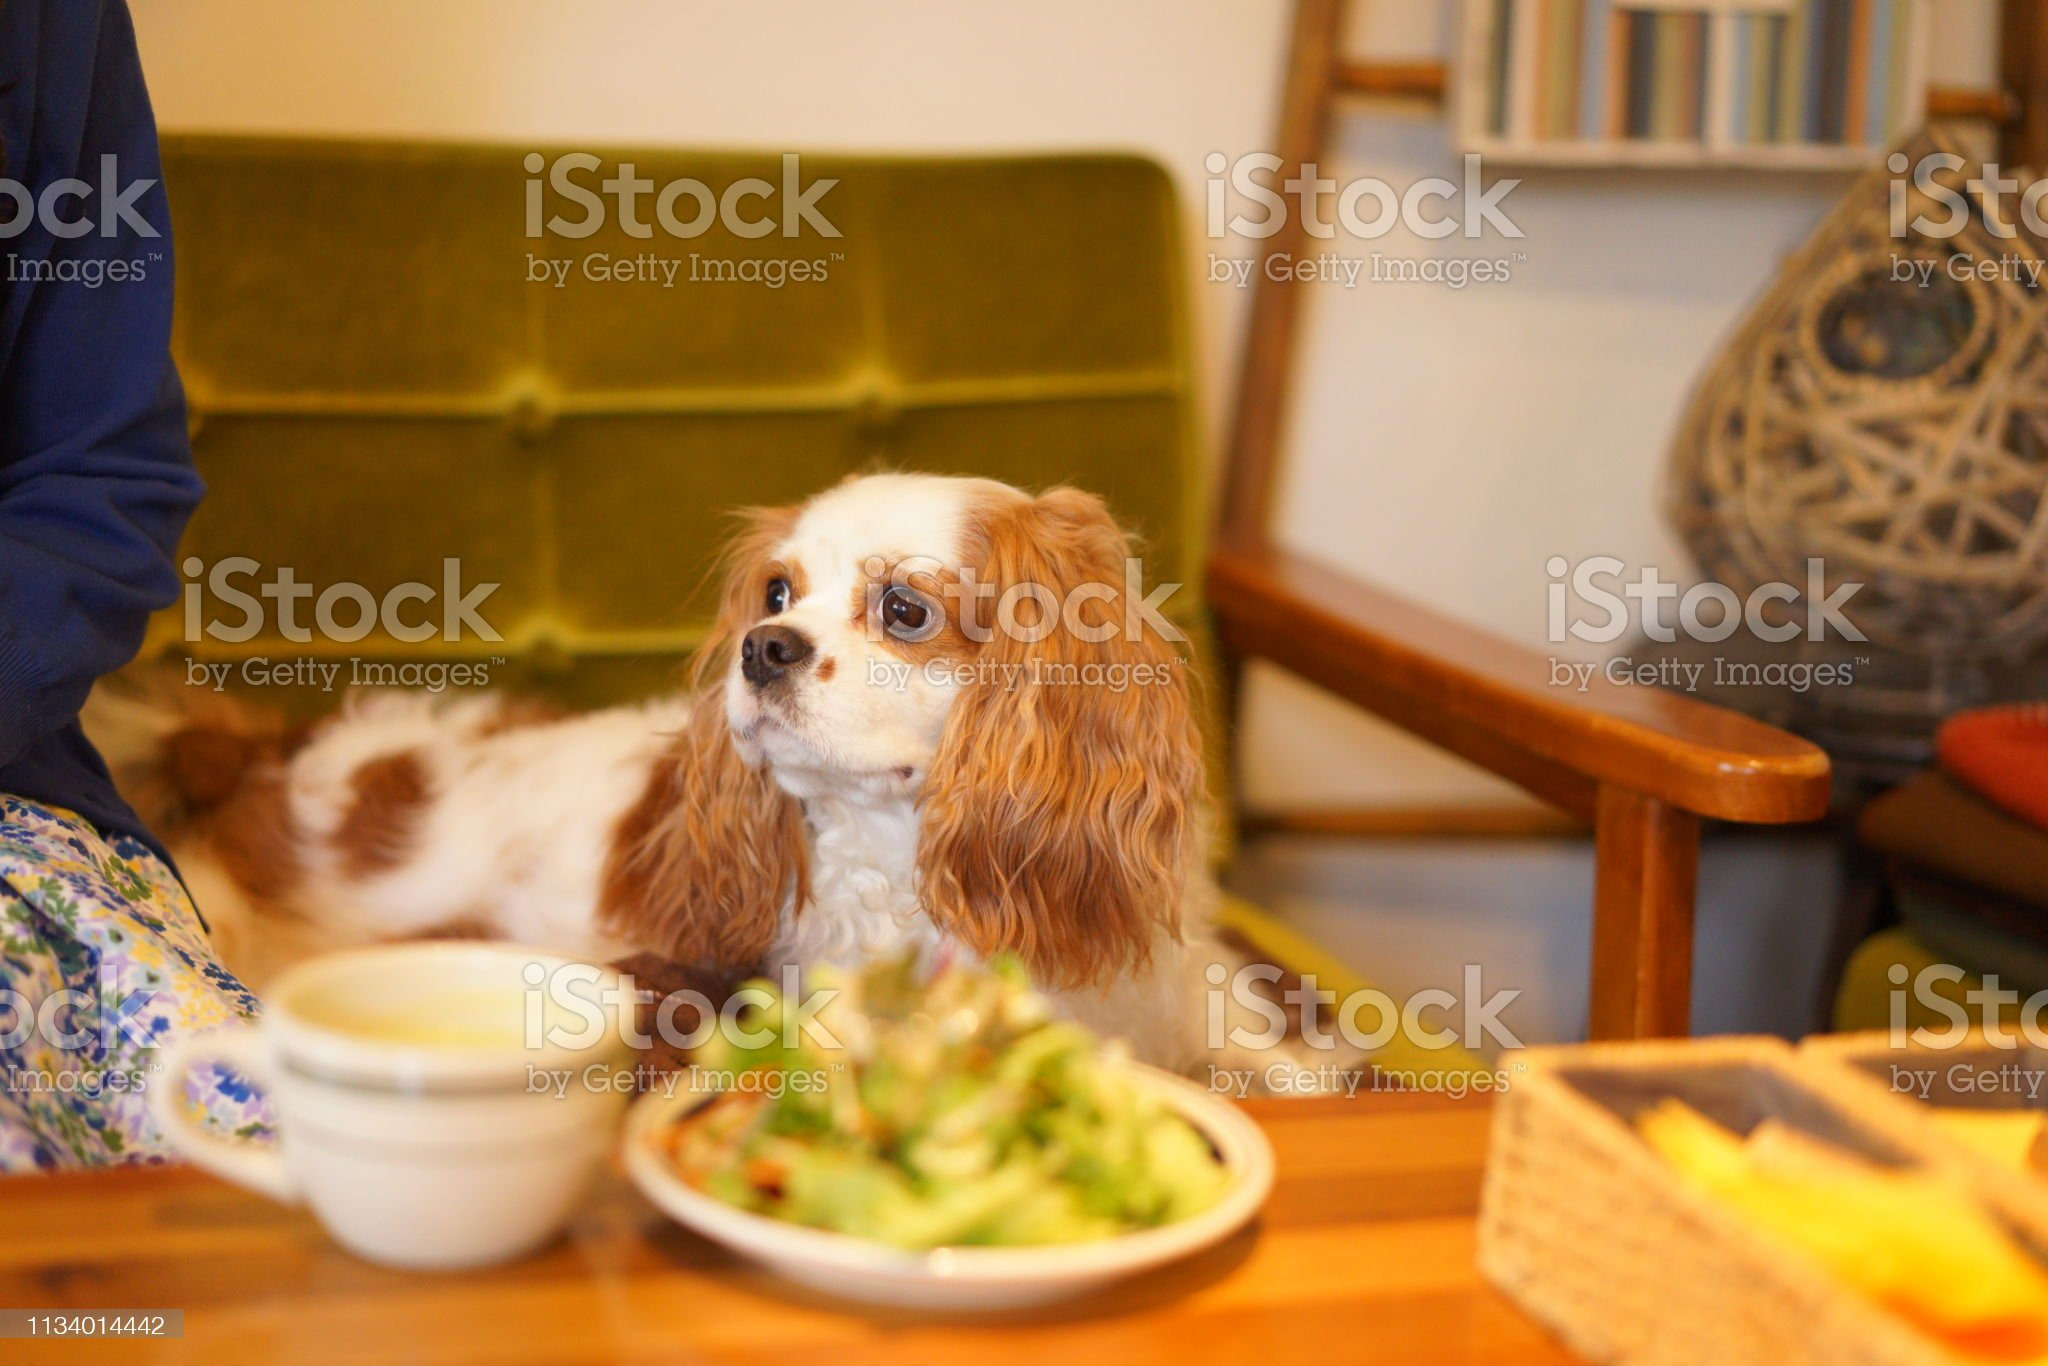 https://media.istockphoto.com/photos/cavalier-at-dog-cafe-picture-id1134014442?s=2048x2048